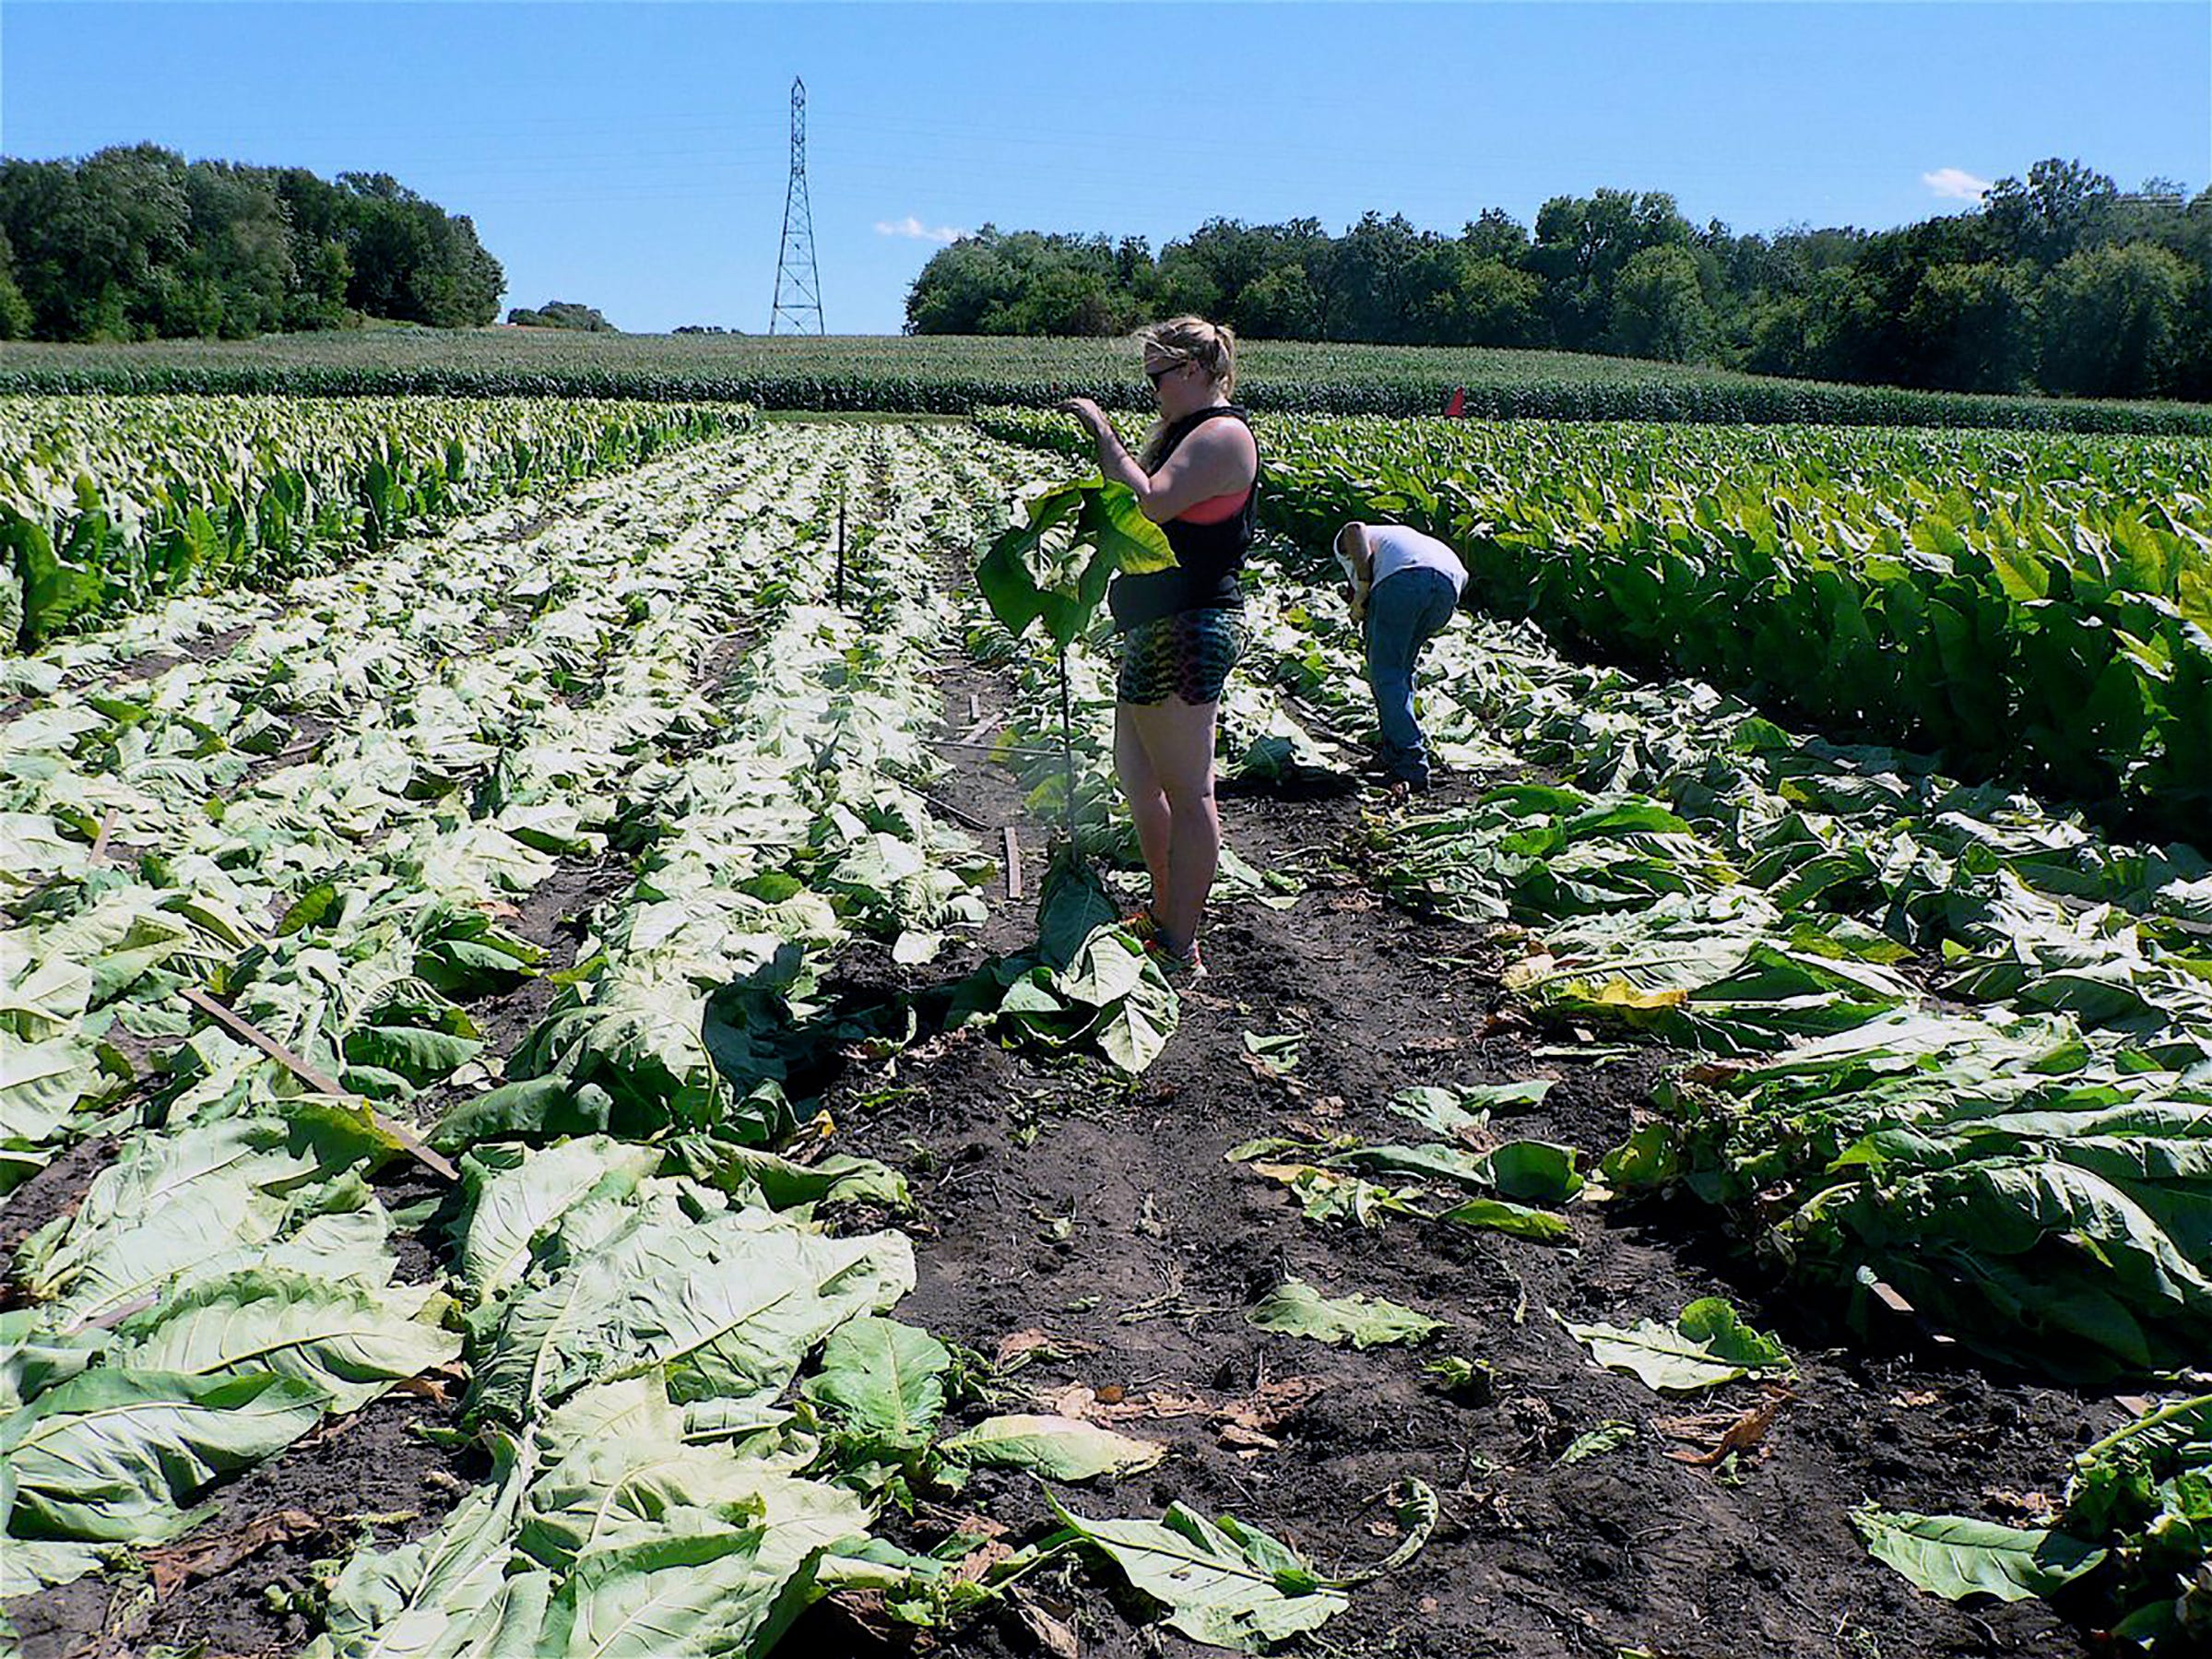 Tobacco: the crop that was and still is - barely